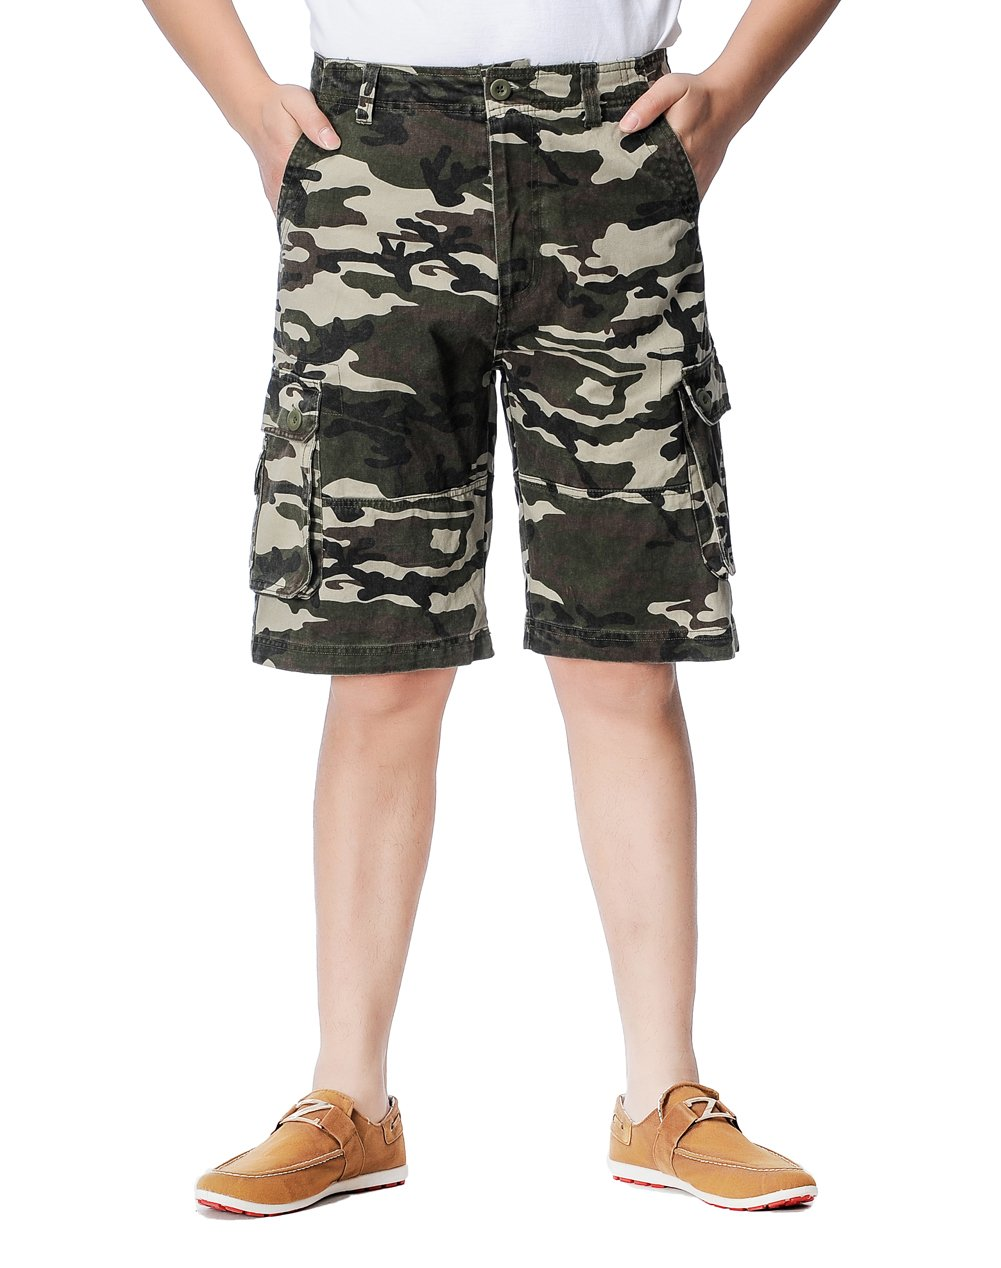 JINGCHENG Summer Cotton Men's Cargo Shorts